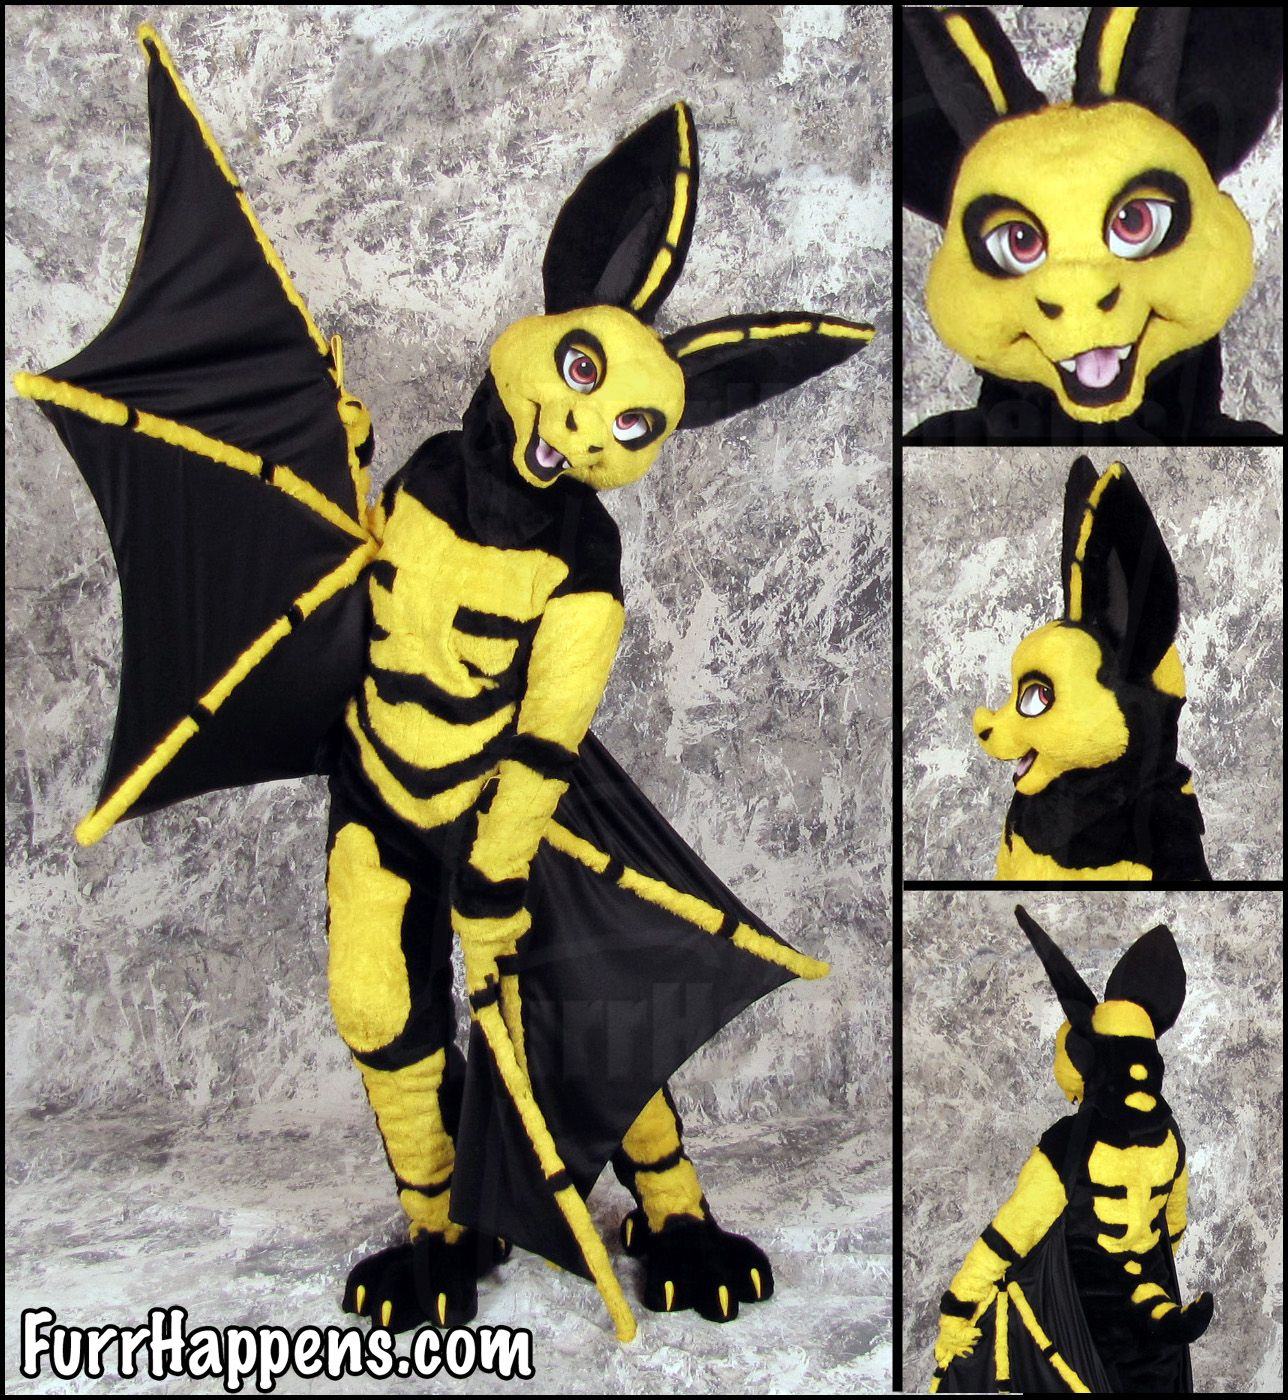 Bat Fursuit Orin Weasyl Anthro Furry Art